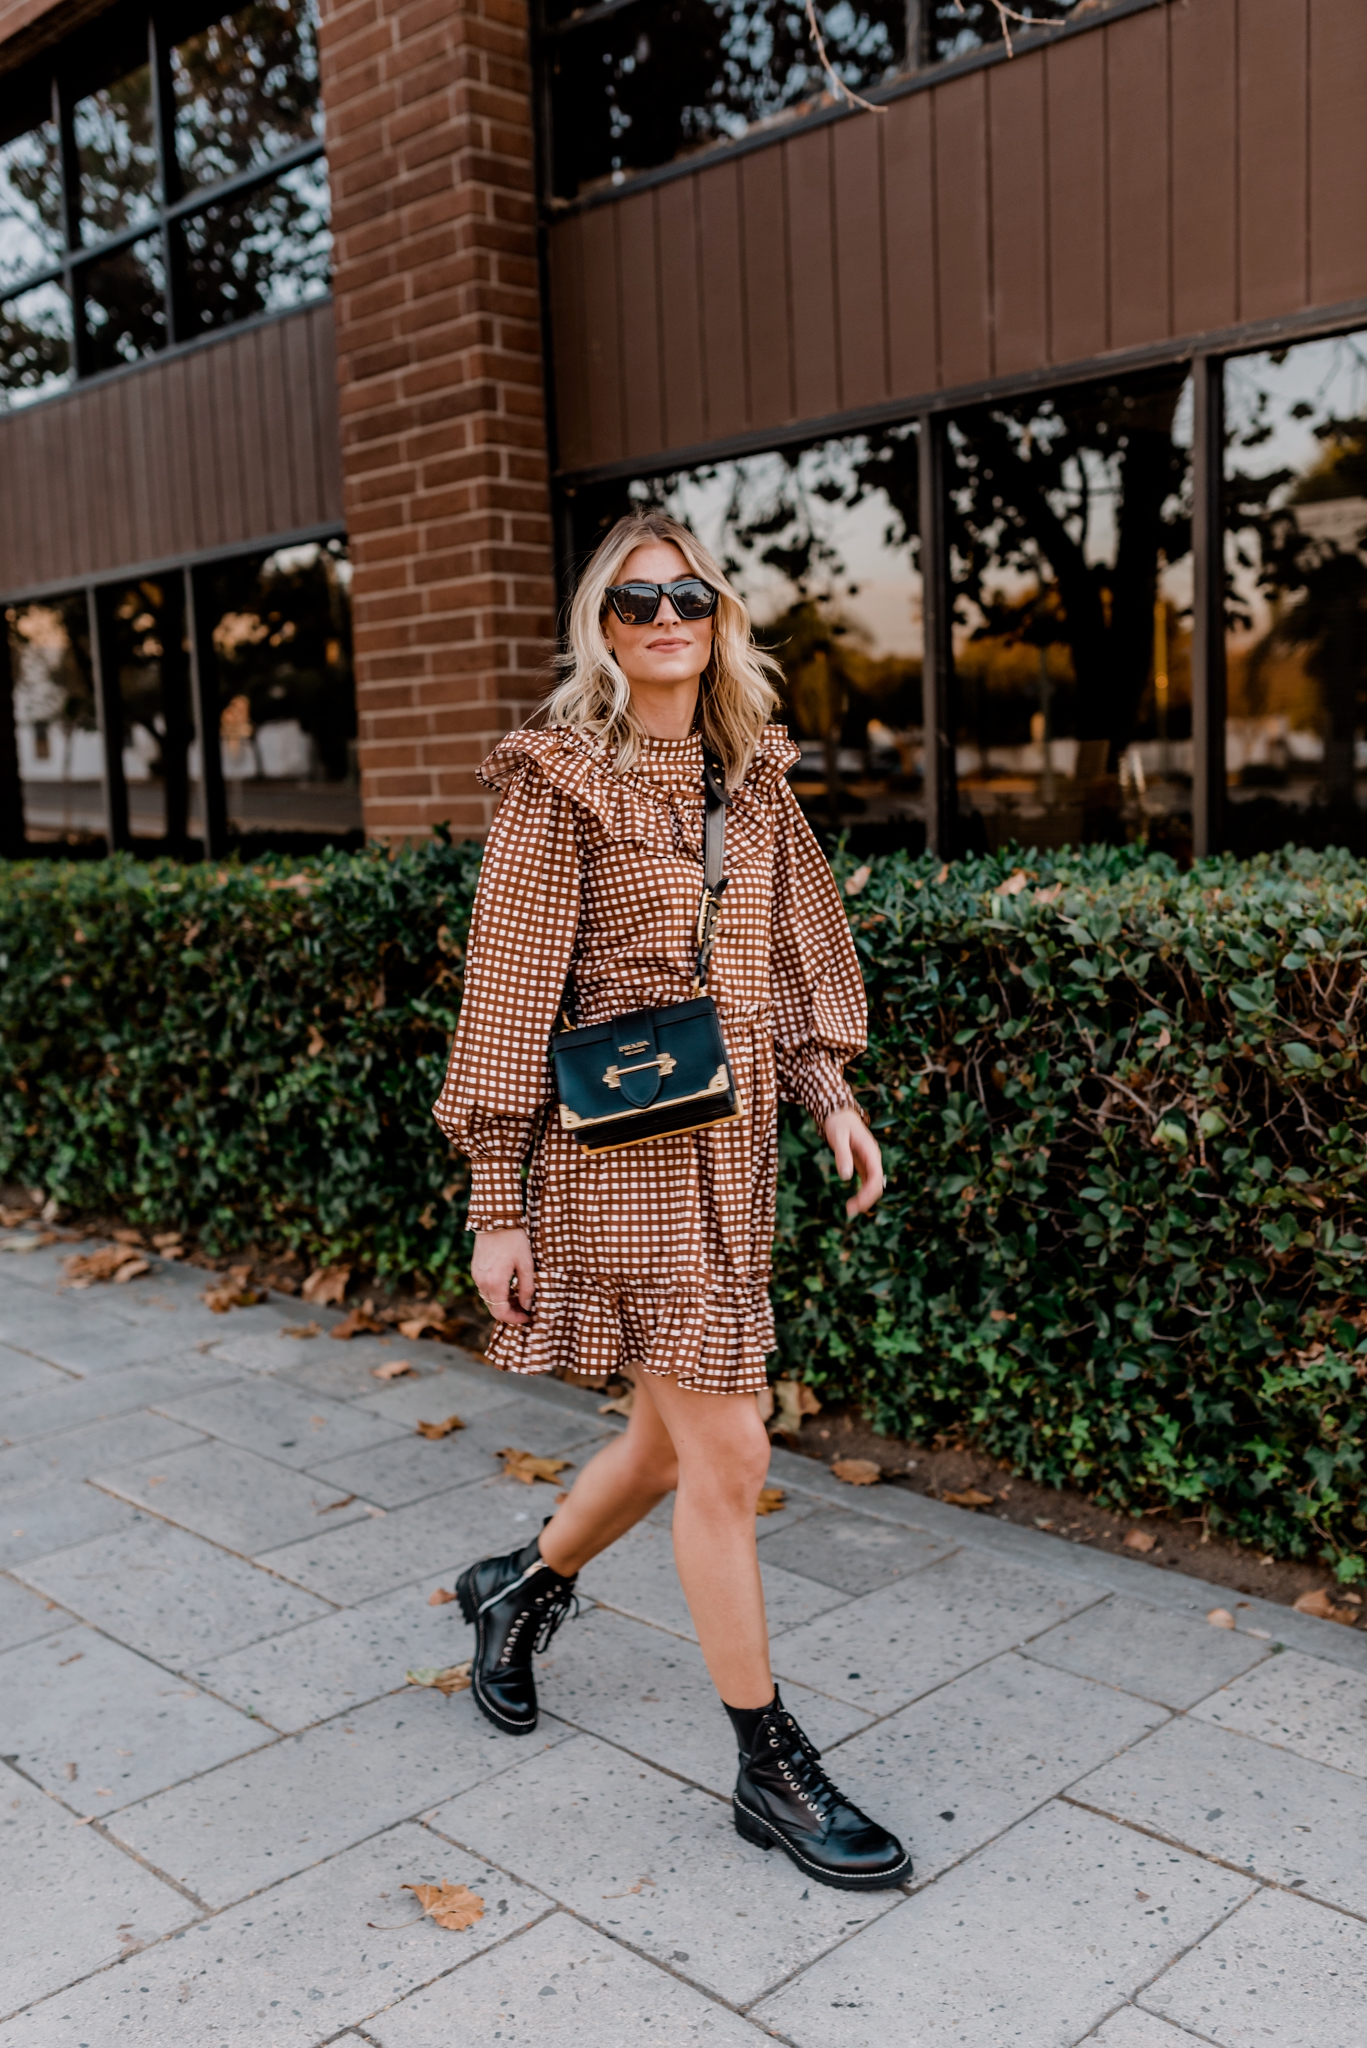 Top 10 Best Women's Combat Boots - Navy Grace - Camilla Thurman | Combat Boots by popular San Diego fashion blog, Navy Grace: image of a woman walking outside and wearing a Anthropologie Penny Gingham Mini Dress, Bloomingdales AQUA Women's Jax Combat Boots, Amazon Mosanana Square Cateye Sunglasses, and carrying a Prada Cashier bag.